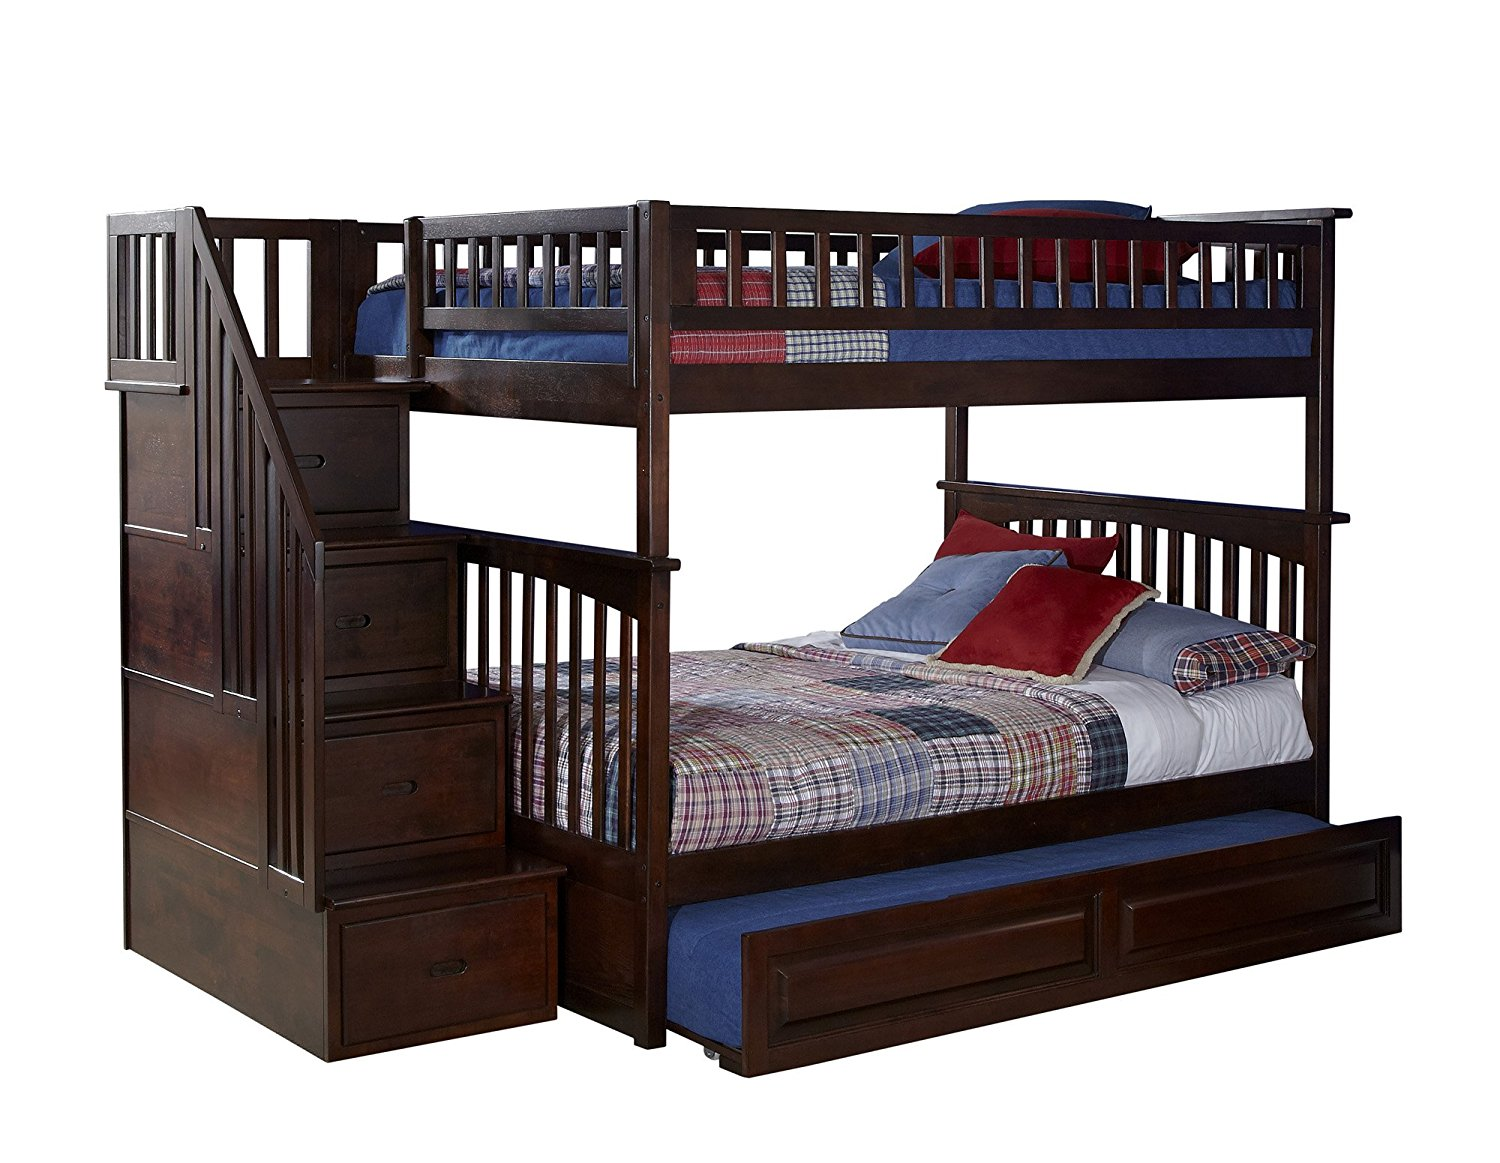 Columbia Staircase Bunk Bed with Trundle Bed, Full Over Full, Antique Walnut